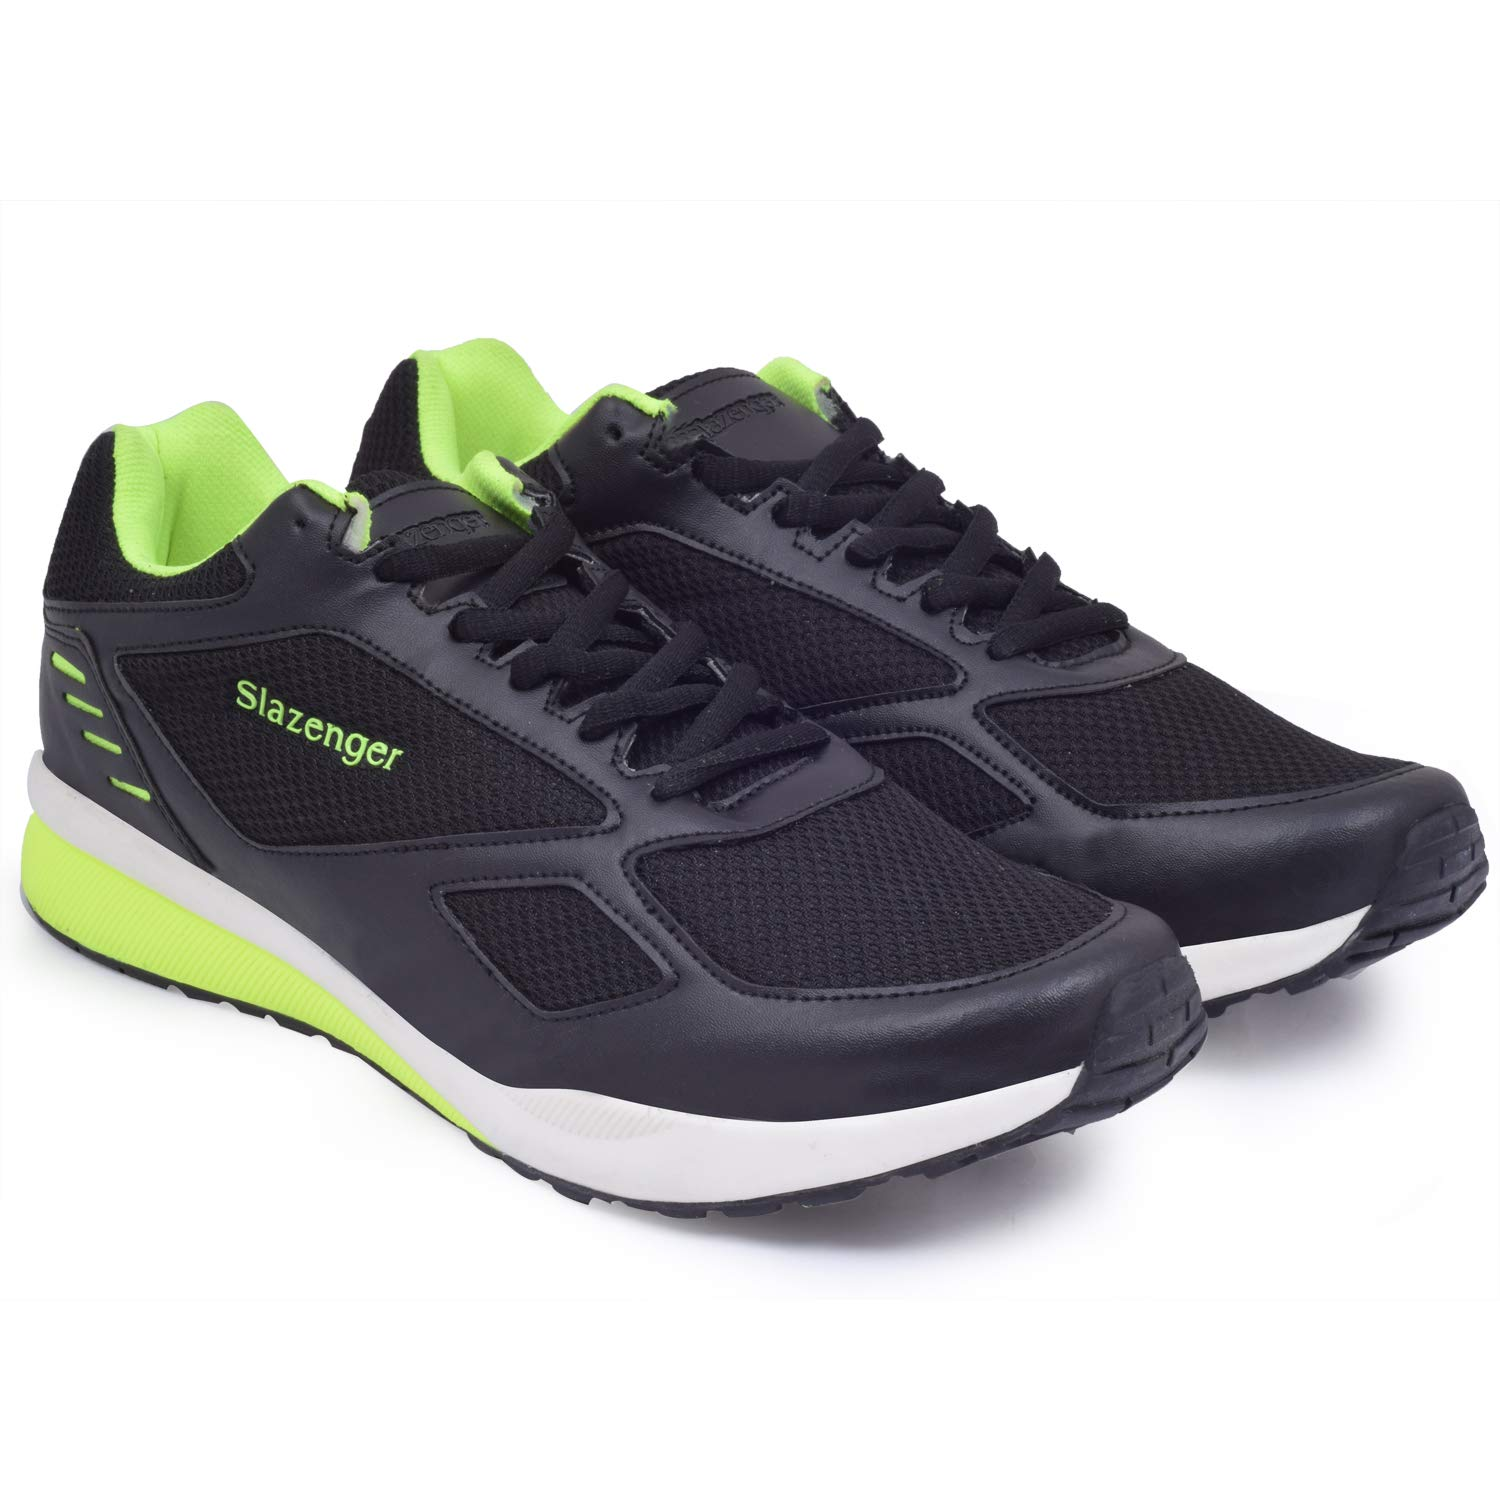 d0f2d89e54a Slazenger Plutus Running Shoes for Men: Buy Online at Low Prices in India -  Amazon.in